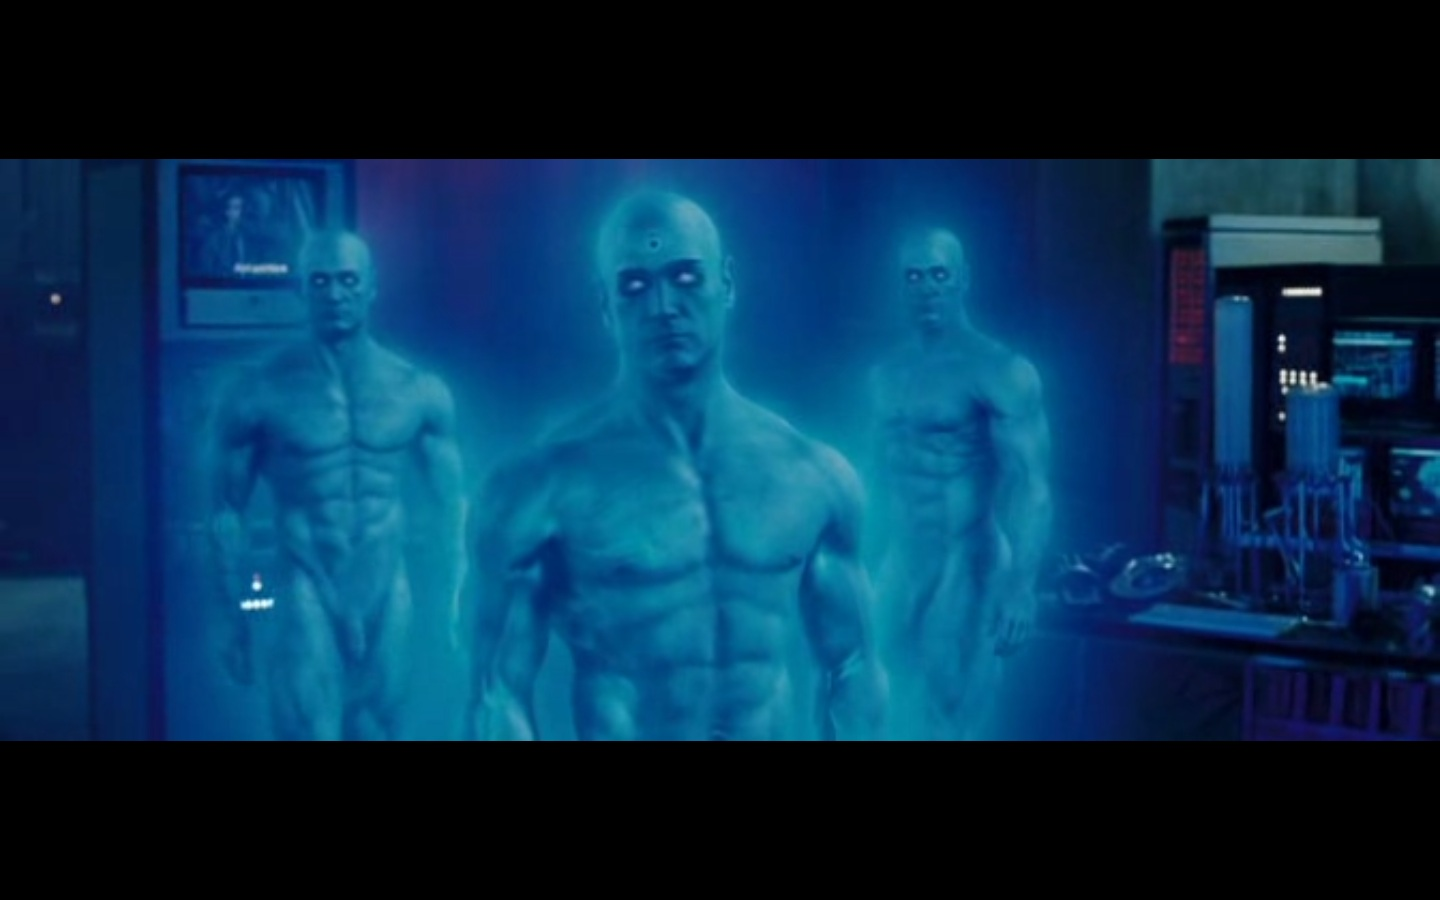 from Raymond billy crudup watchmen naked